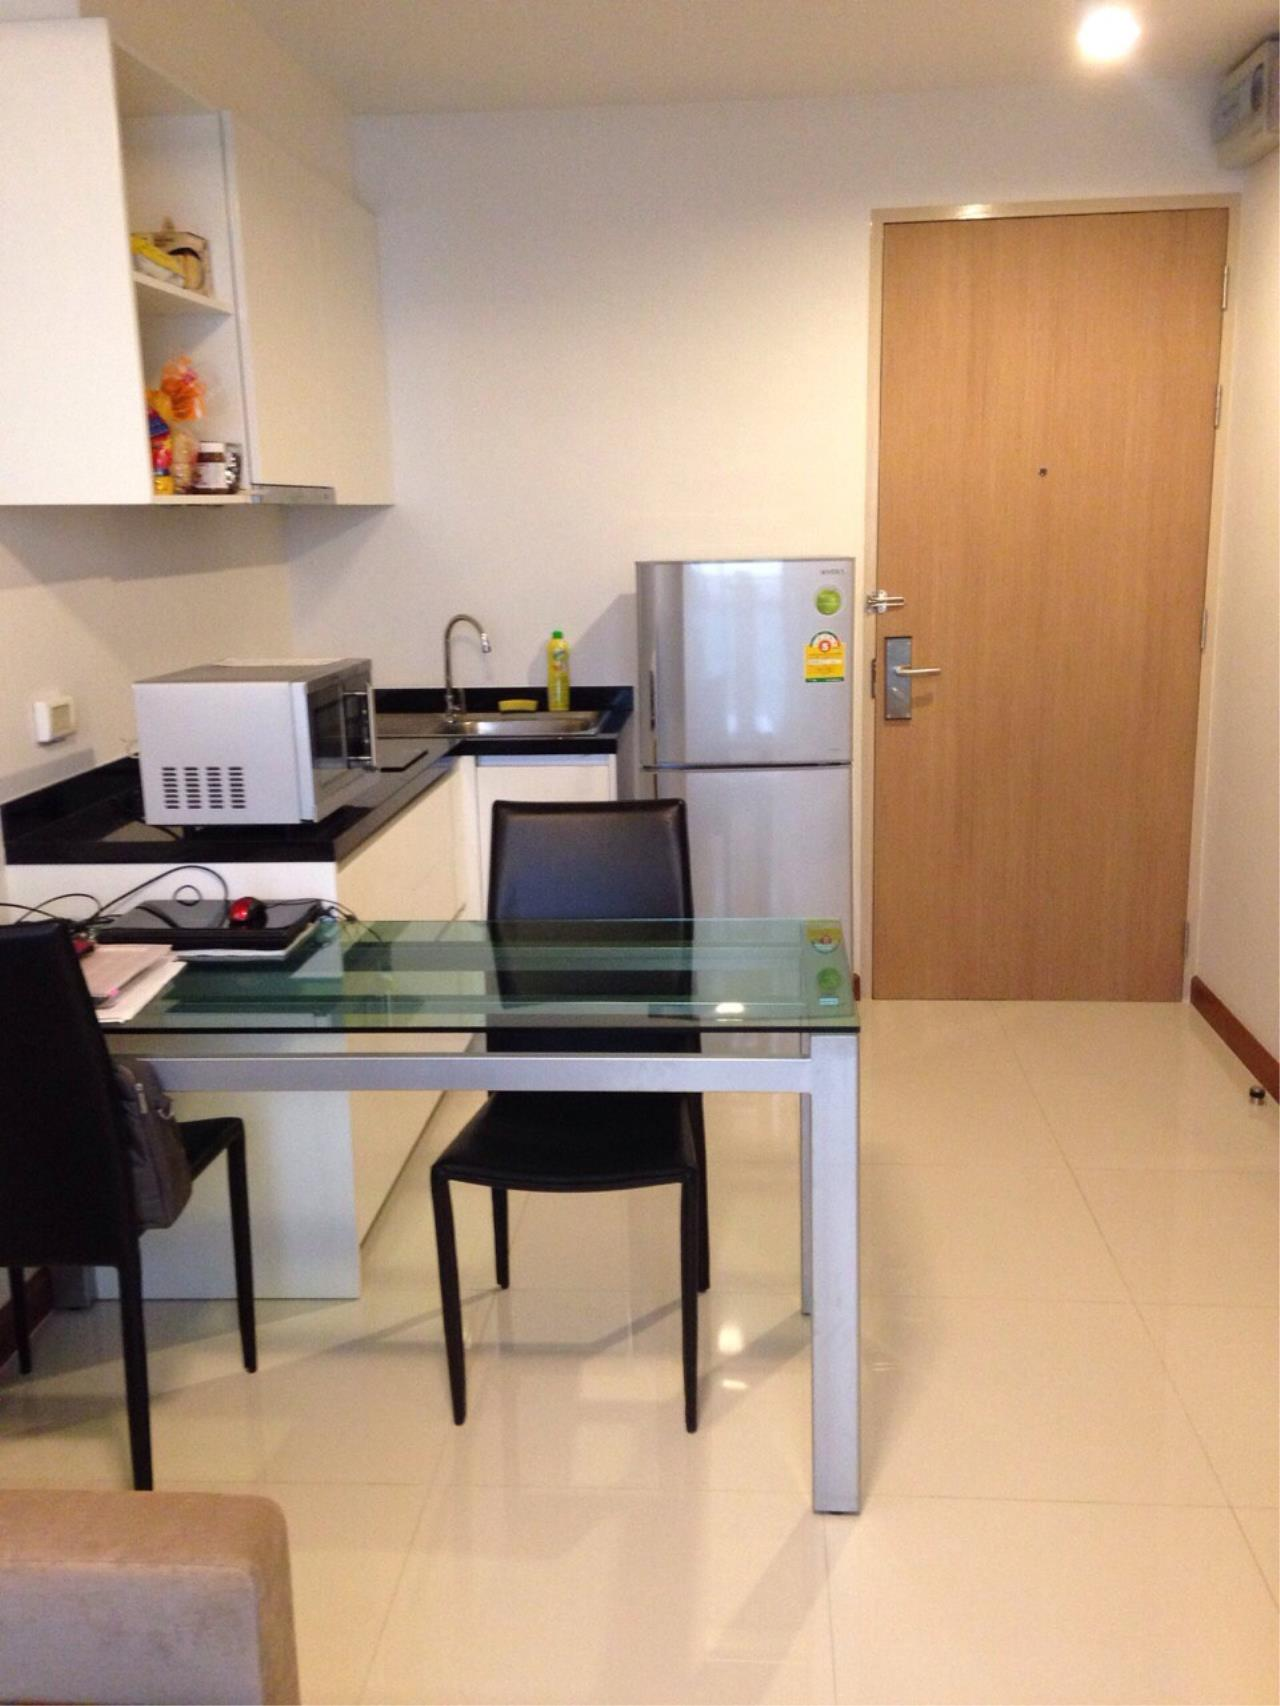 Siam Prop Agency's One Bedroom@Le Cote 8 Thonglor, Rent 23,000 / Sell  4.2Mb 7